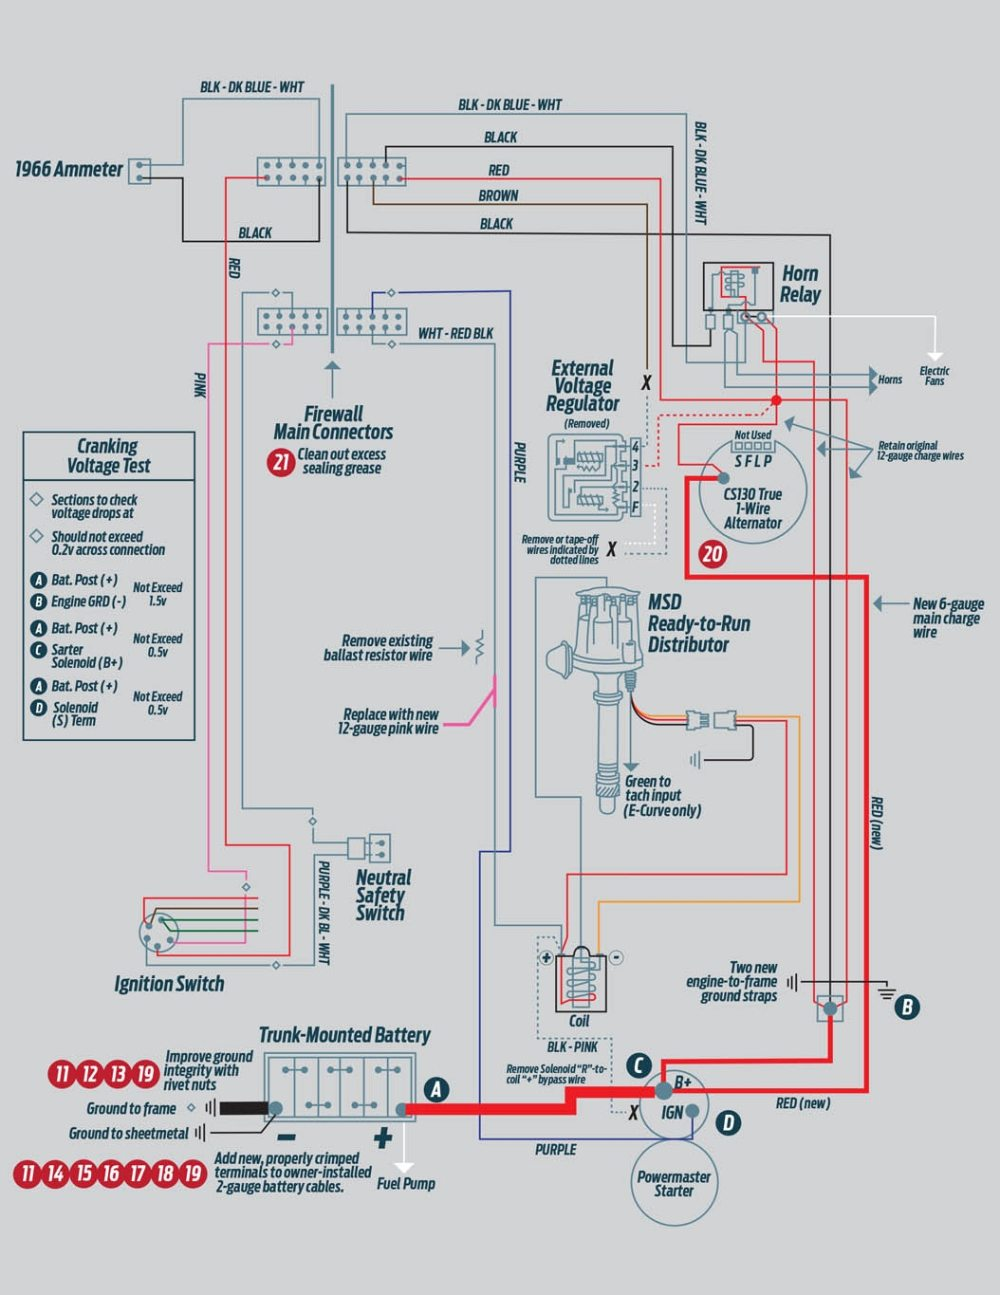 medium resolution of 10 the chevelle had severe voltage drops and inadequate wiring this diagram calls out necessary upgrades